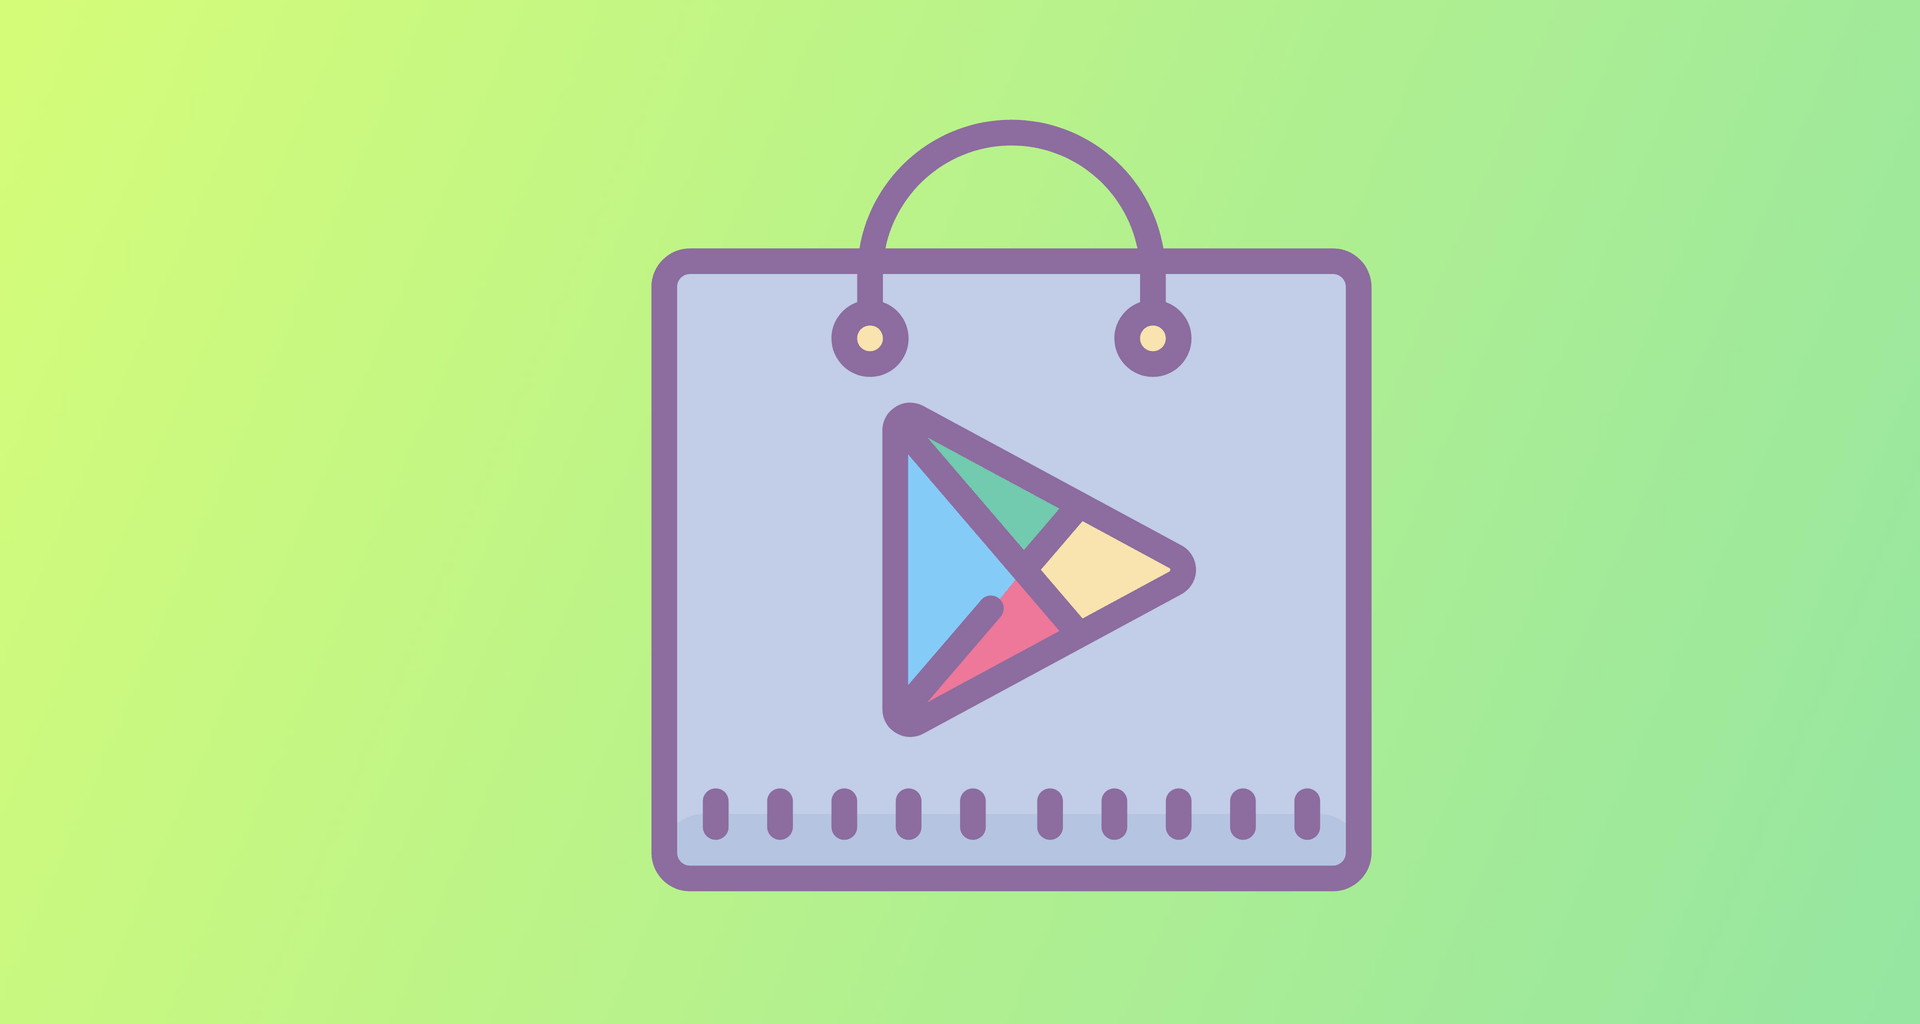 Google-Play-Store-7-1920x1024.png